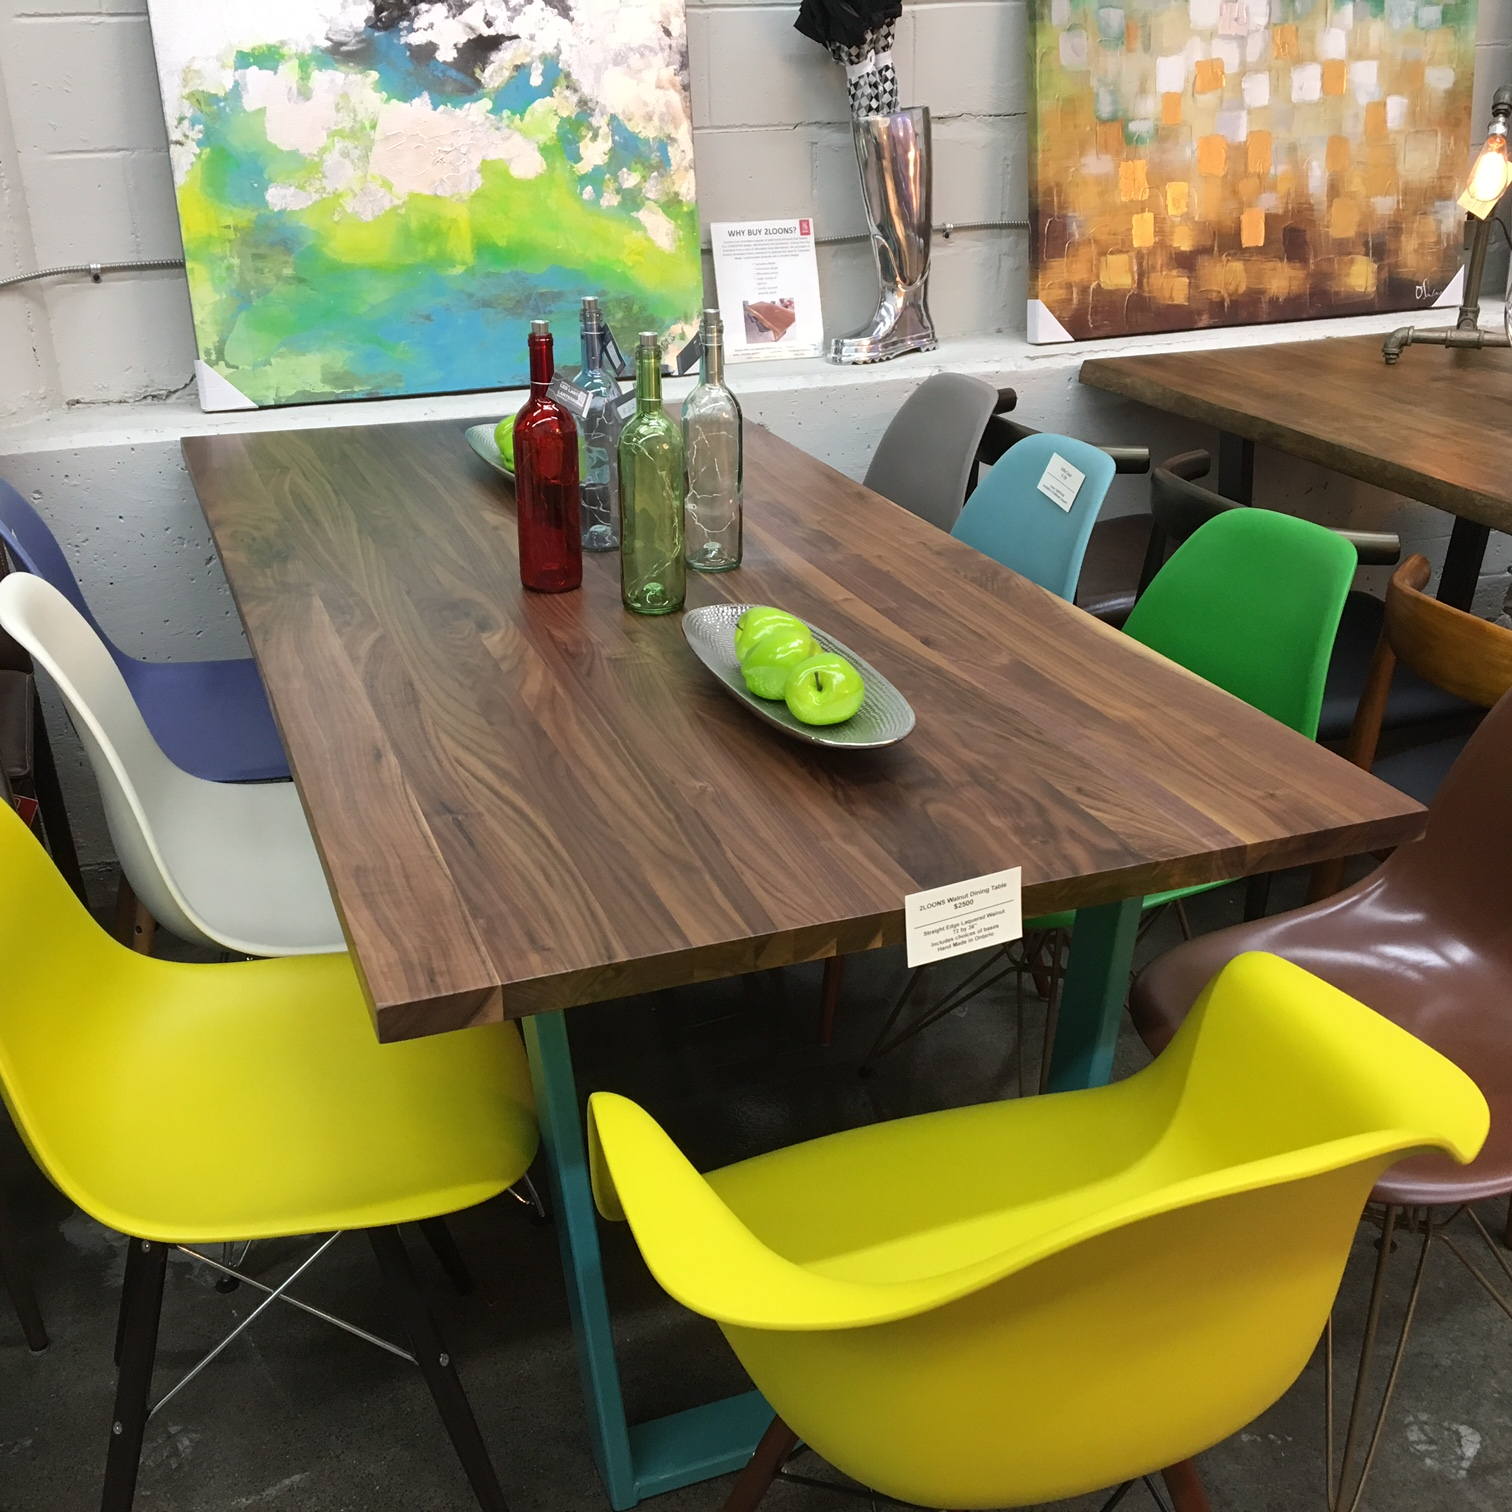 Mikaza Meubles Modernes Montreal: 2Loons Solid Walnut Tables